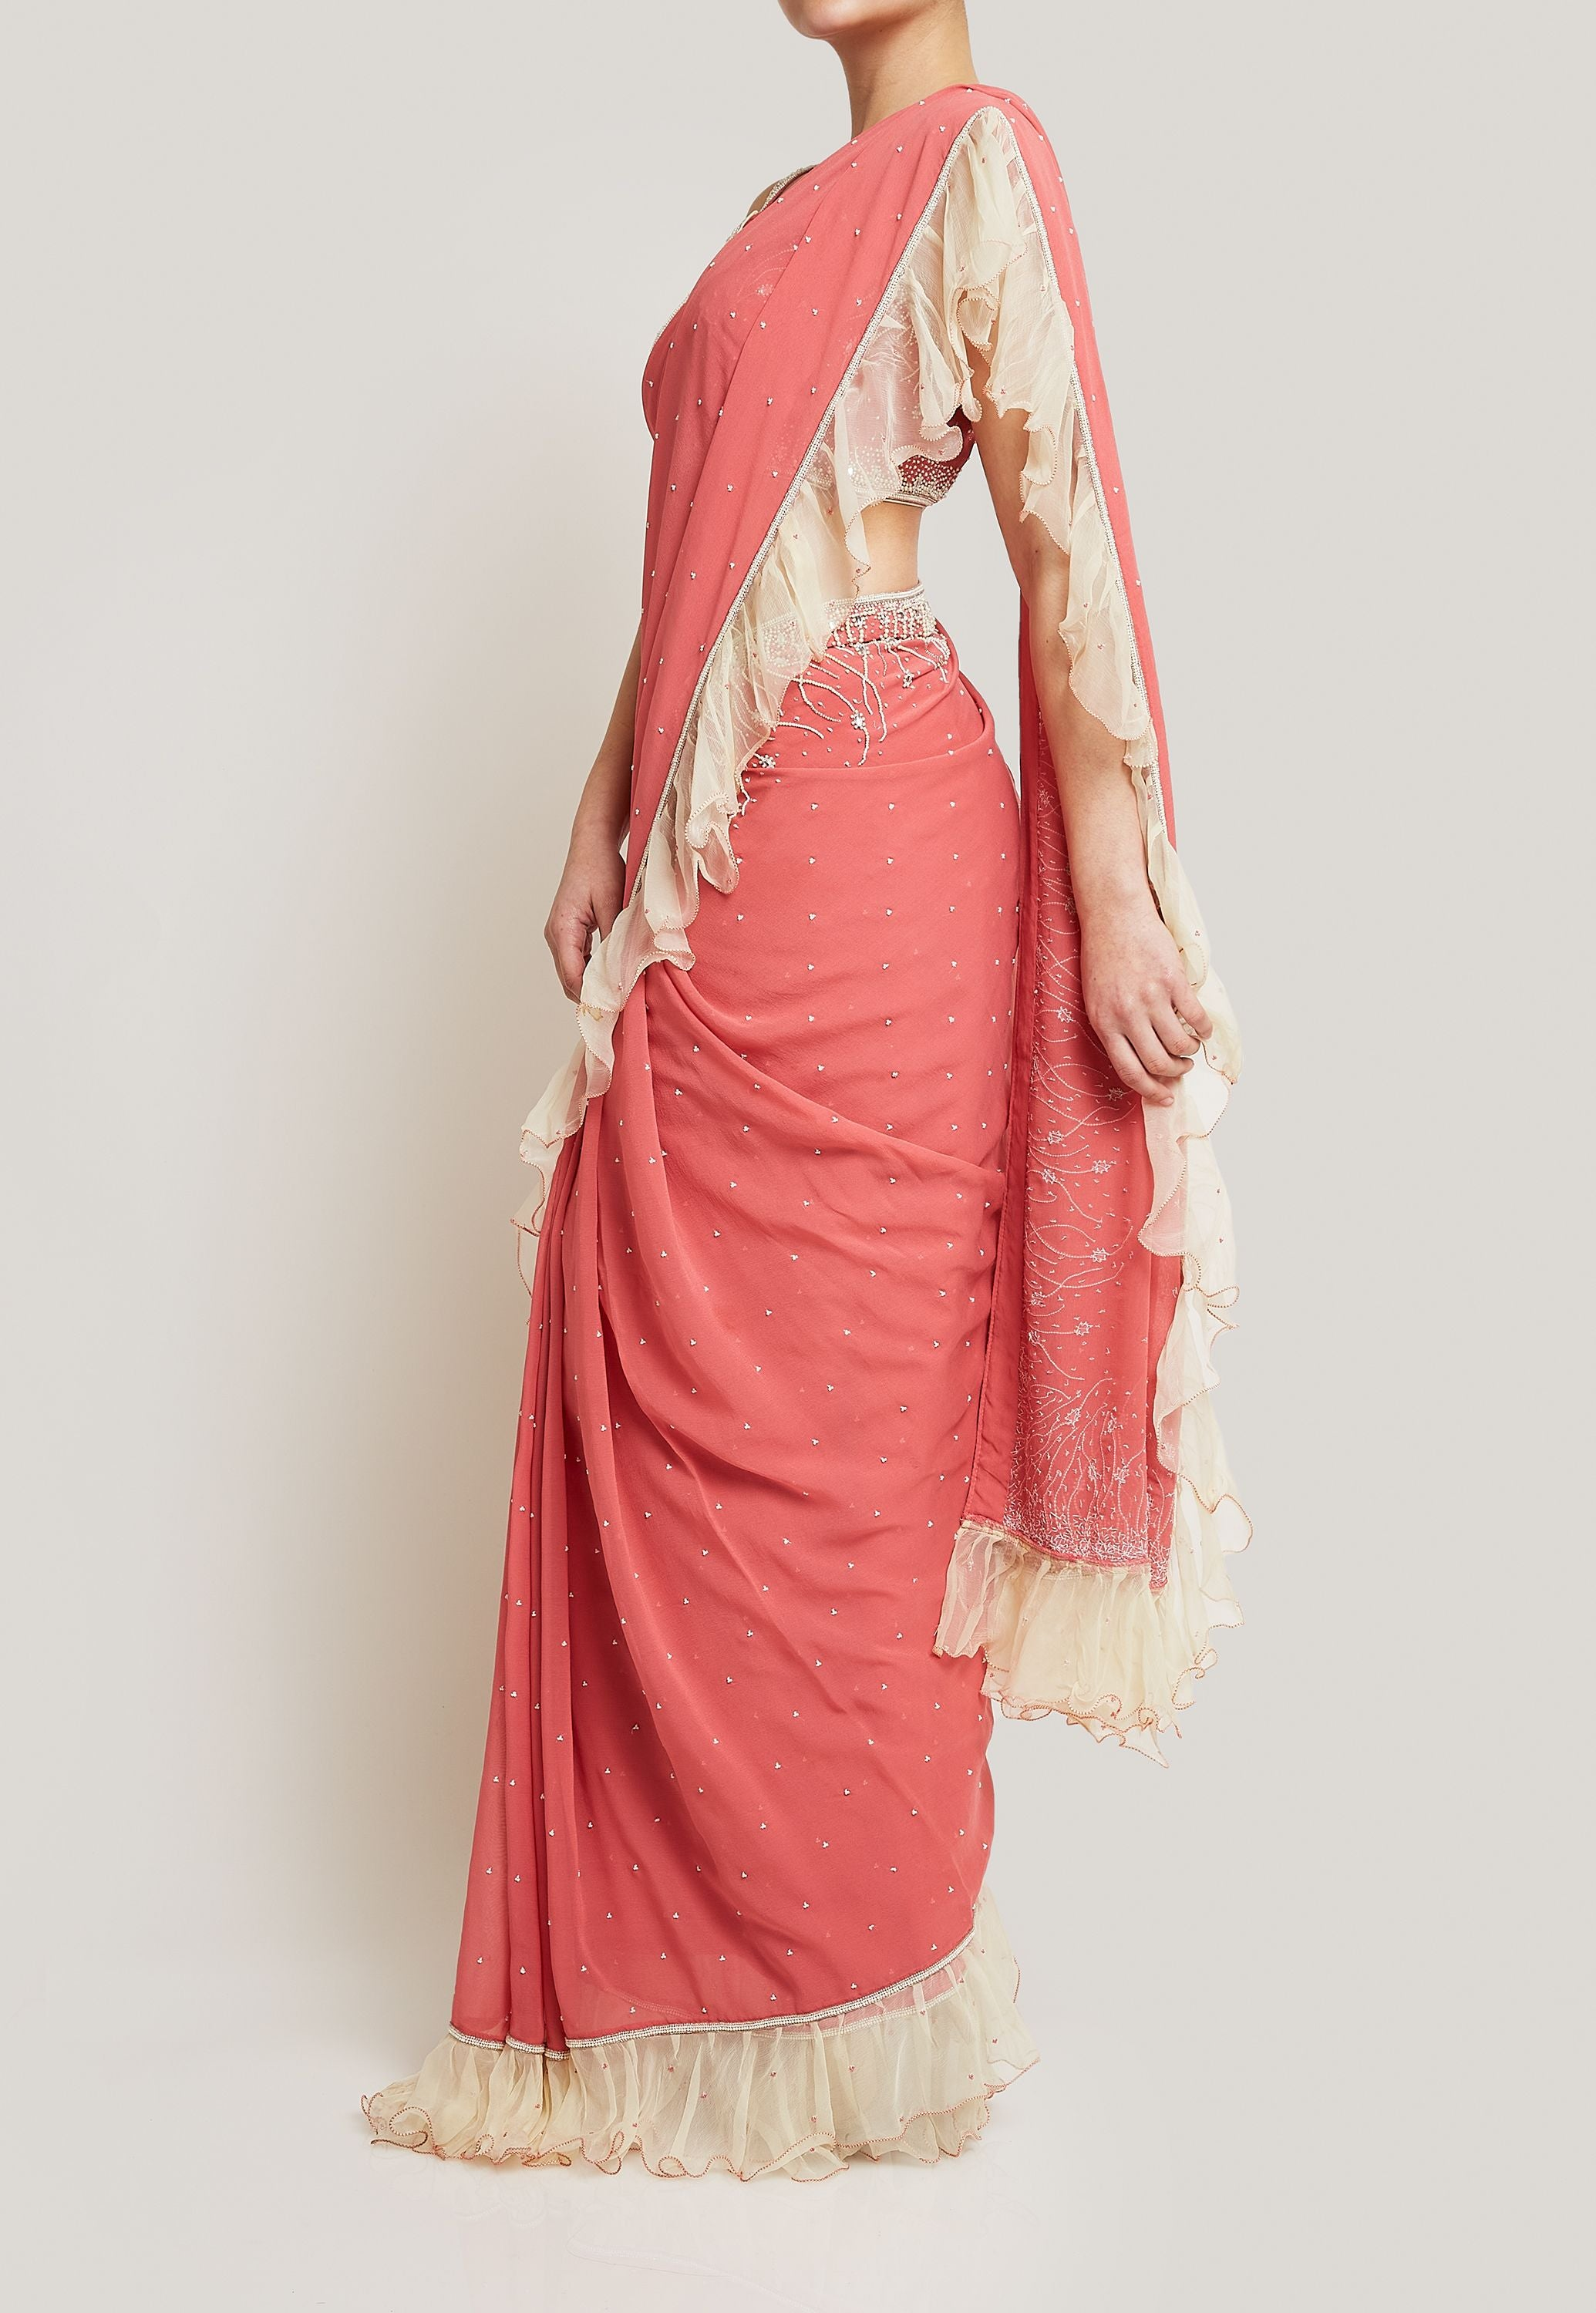 CORAL PINK RUFFLE SAREE WITH PEARL DETAIL